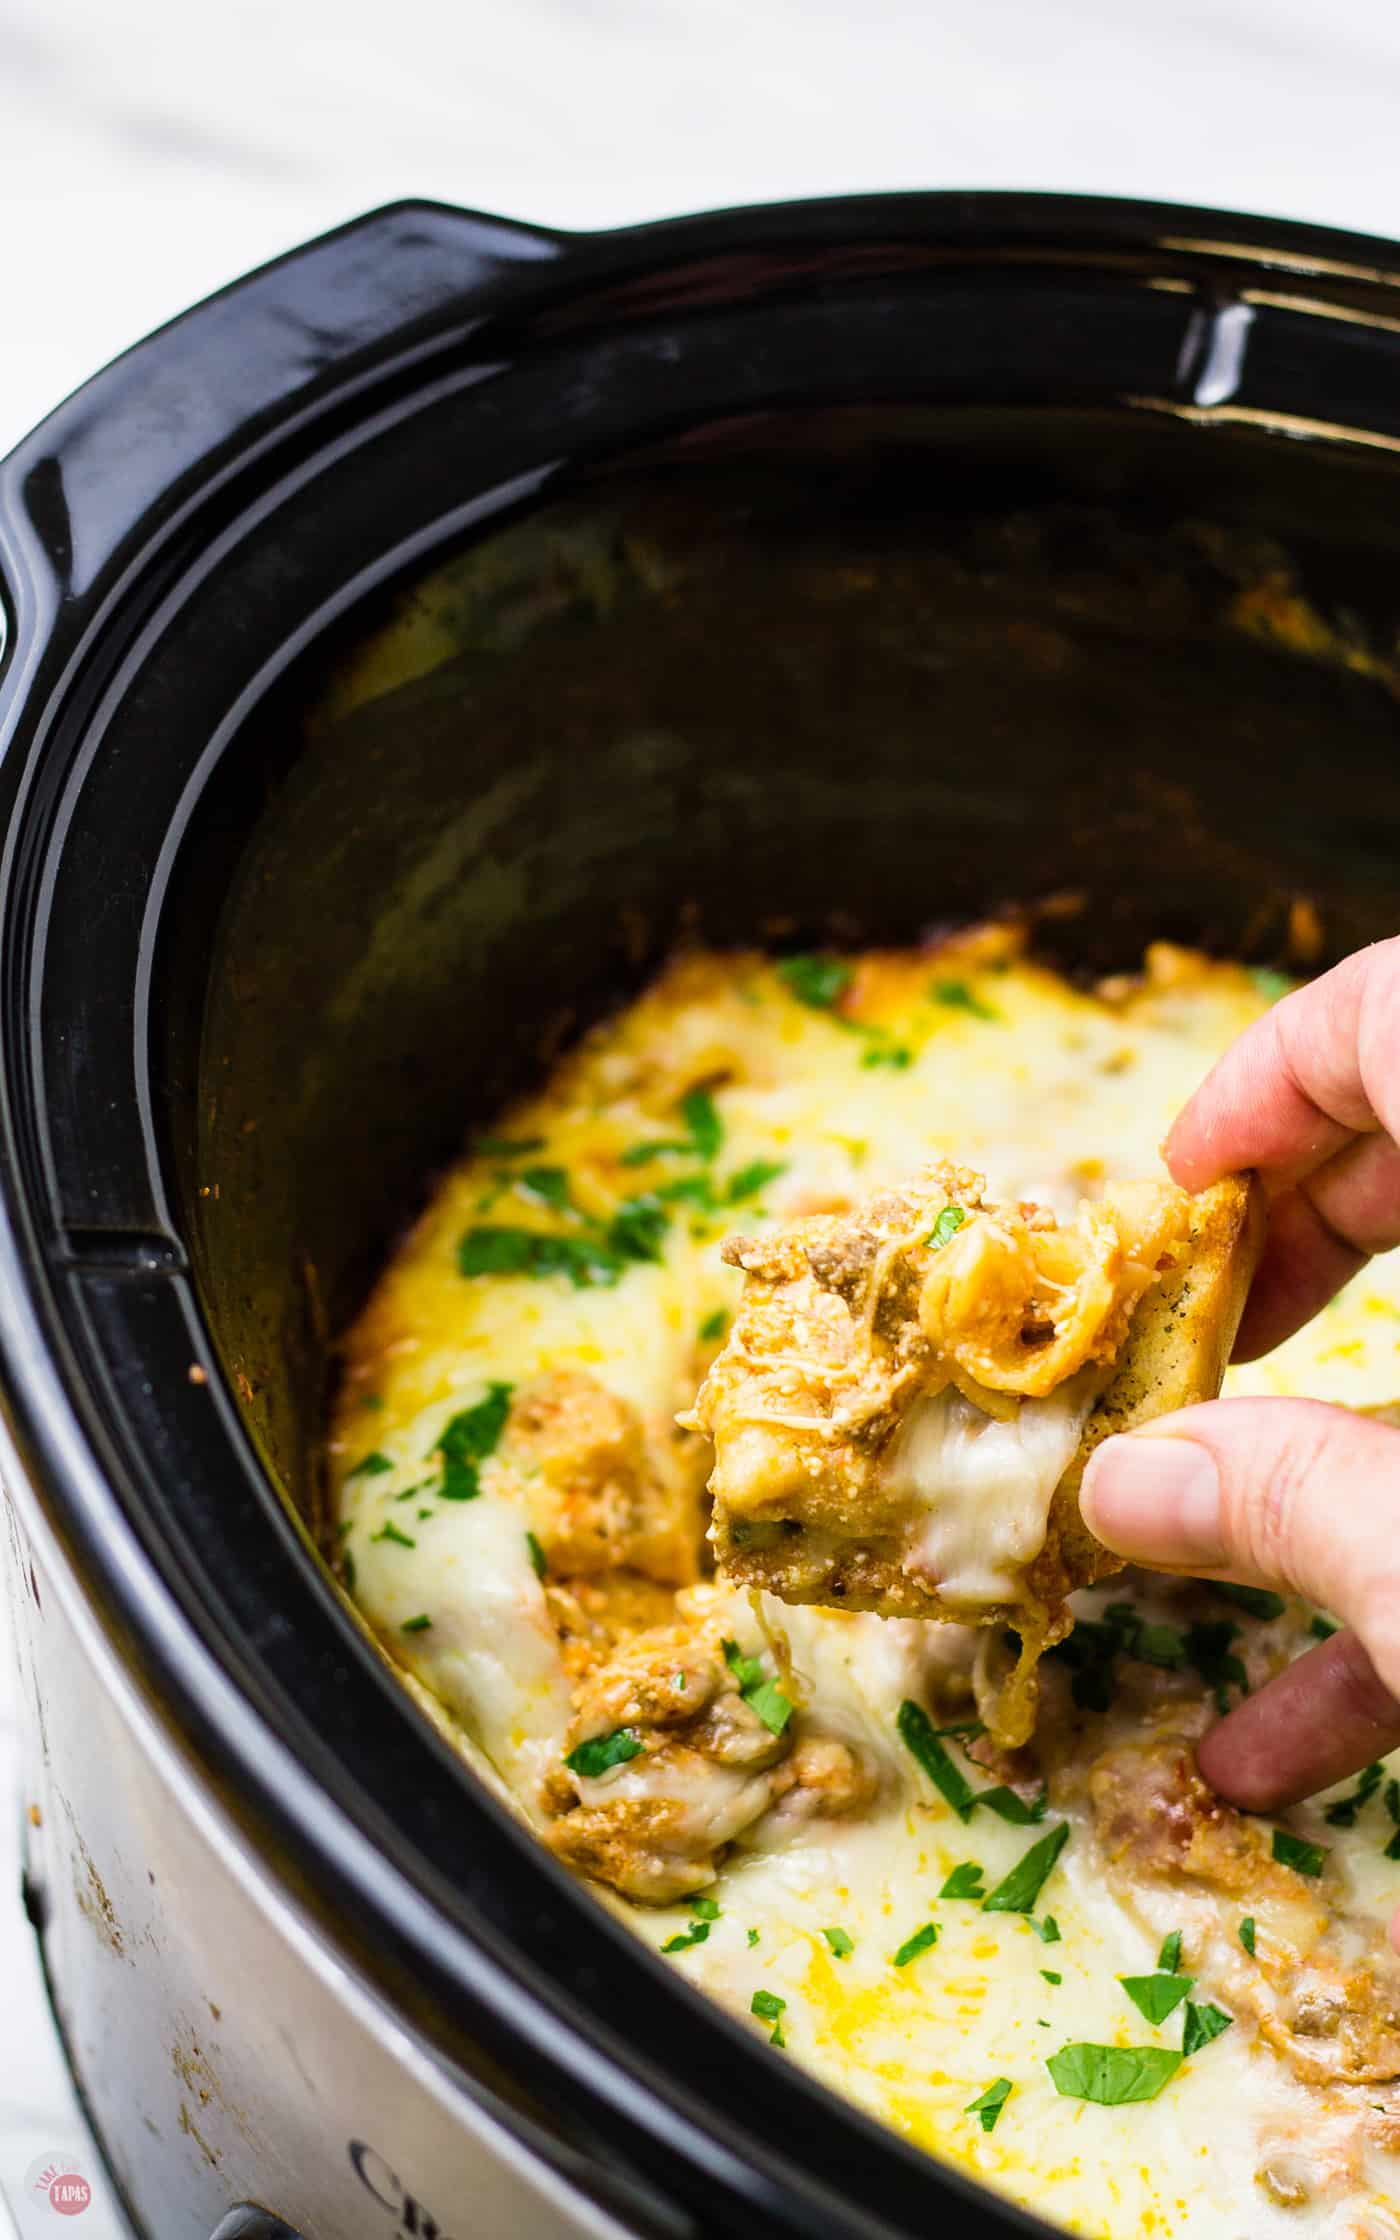 I use garlic bread to scoop up this crockpot lasagna dip